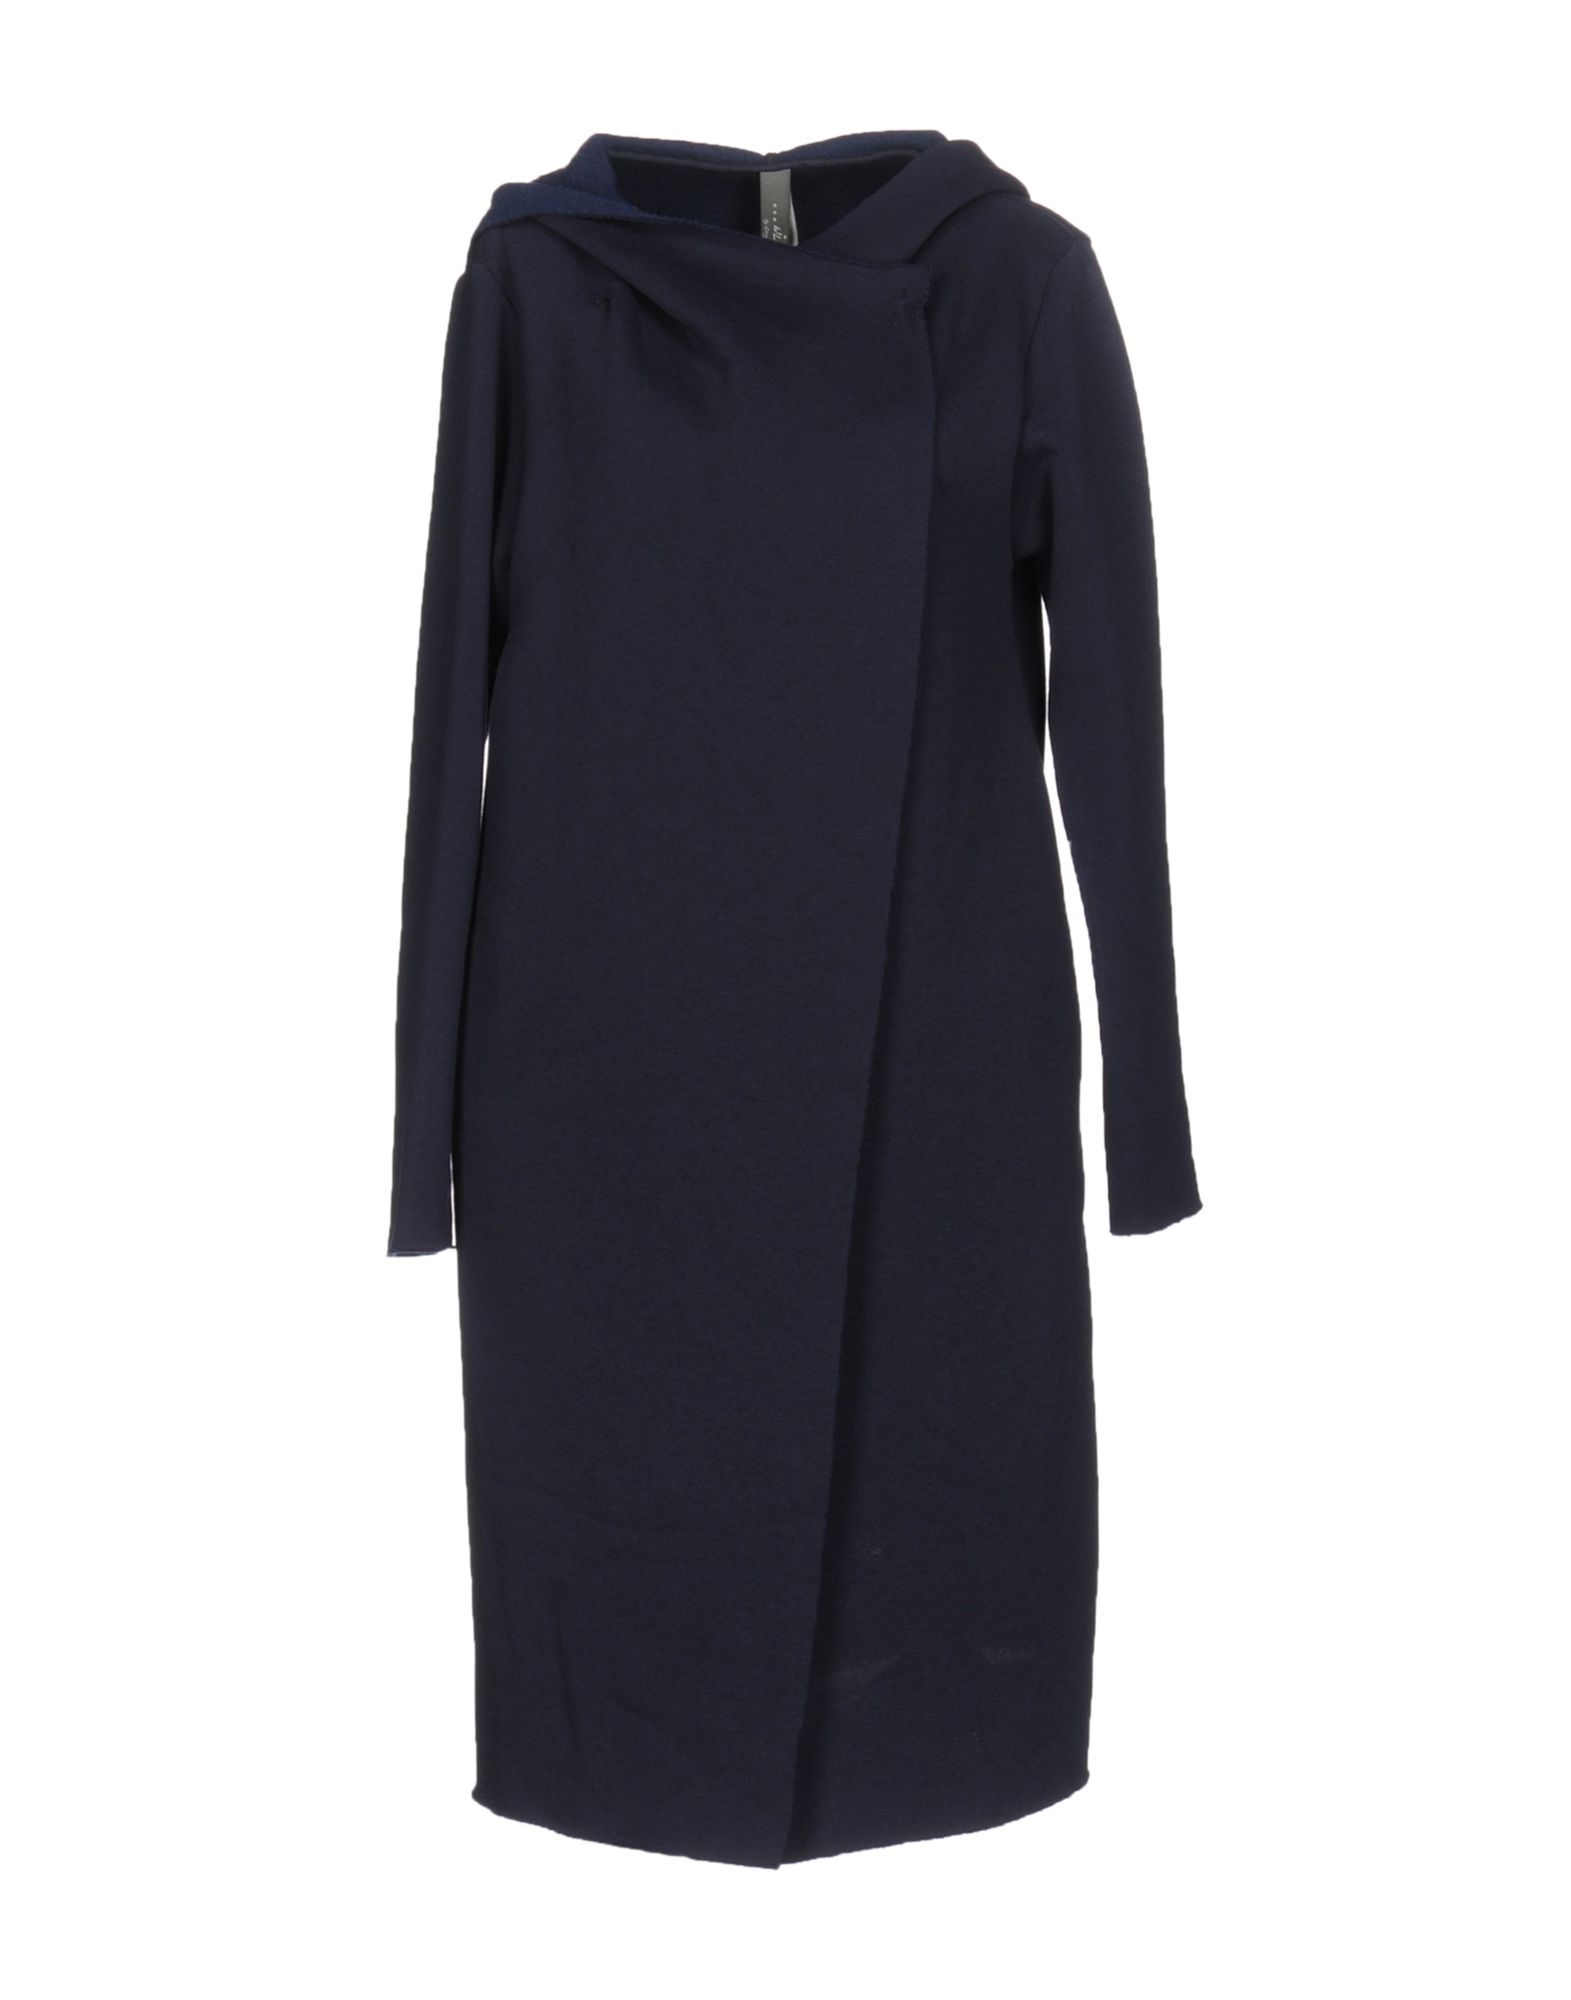 WLG BY GIORGIO BRATO Full-Length Jacket in Dark Blue